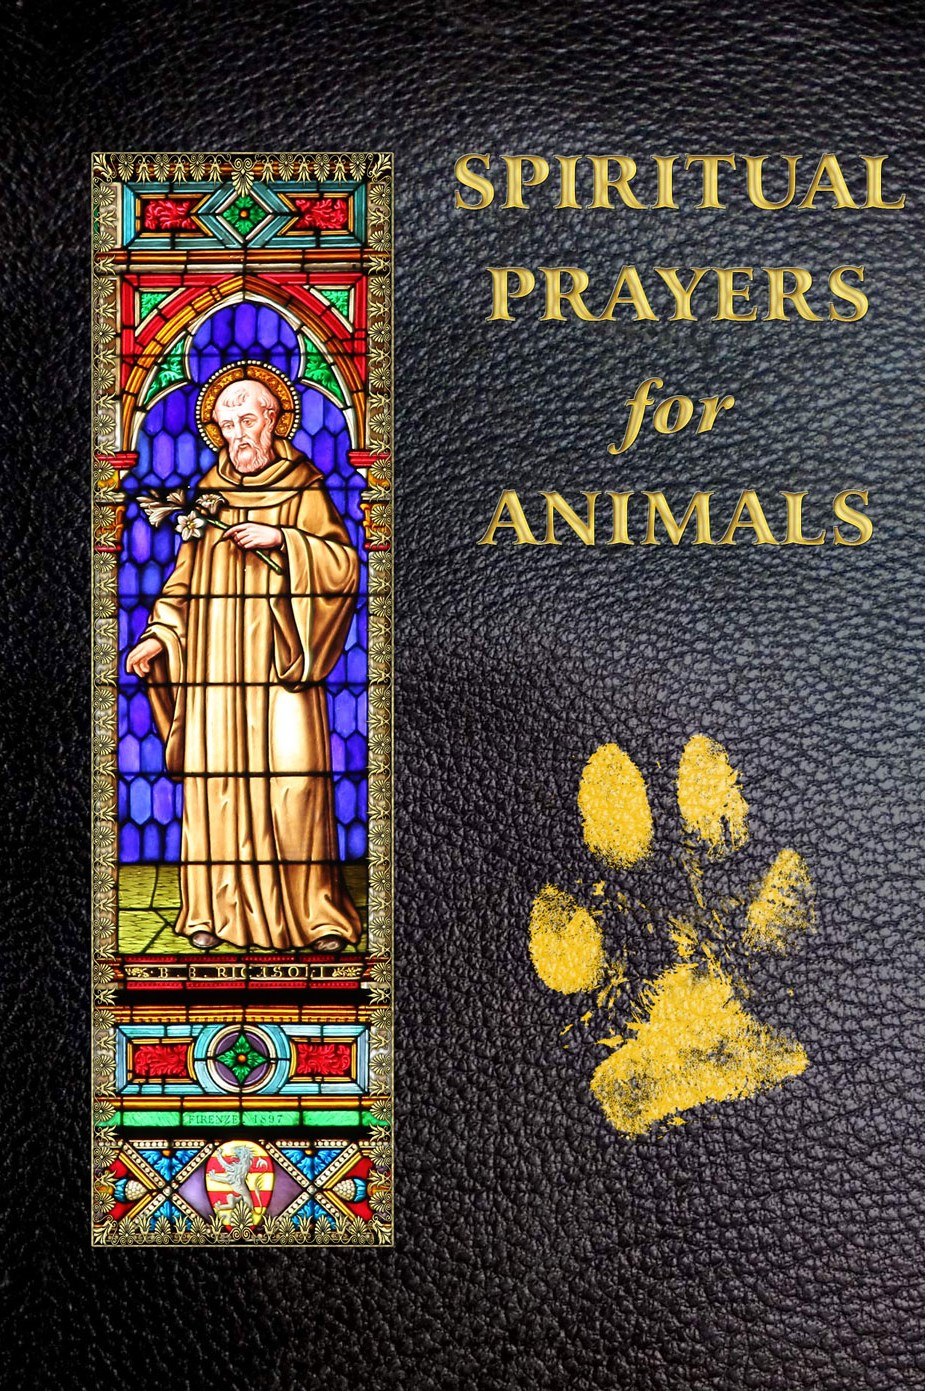 Memorial Pet Loss Products-Spiritual Prayers For Animals